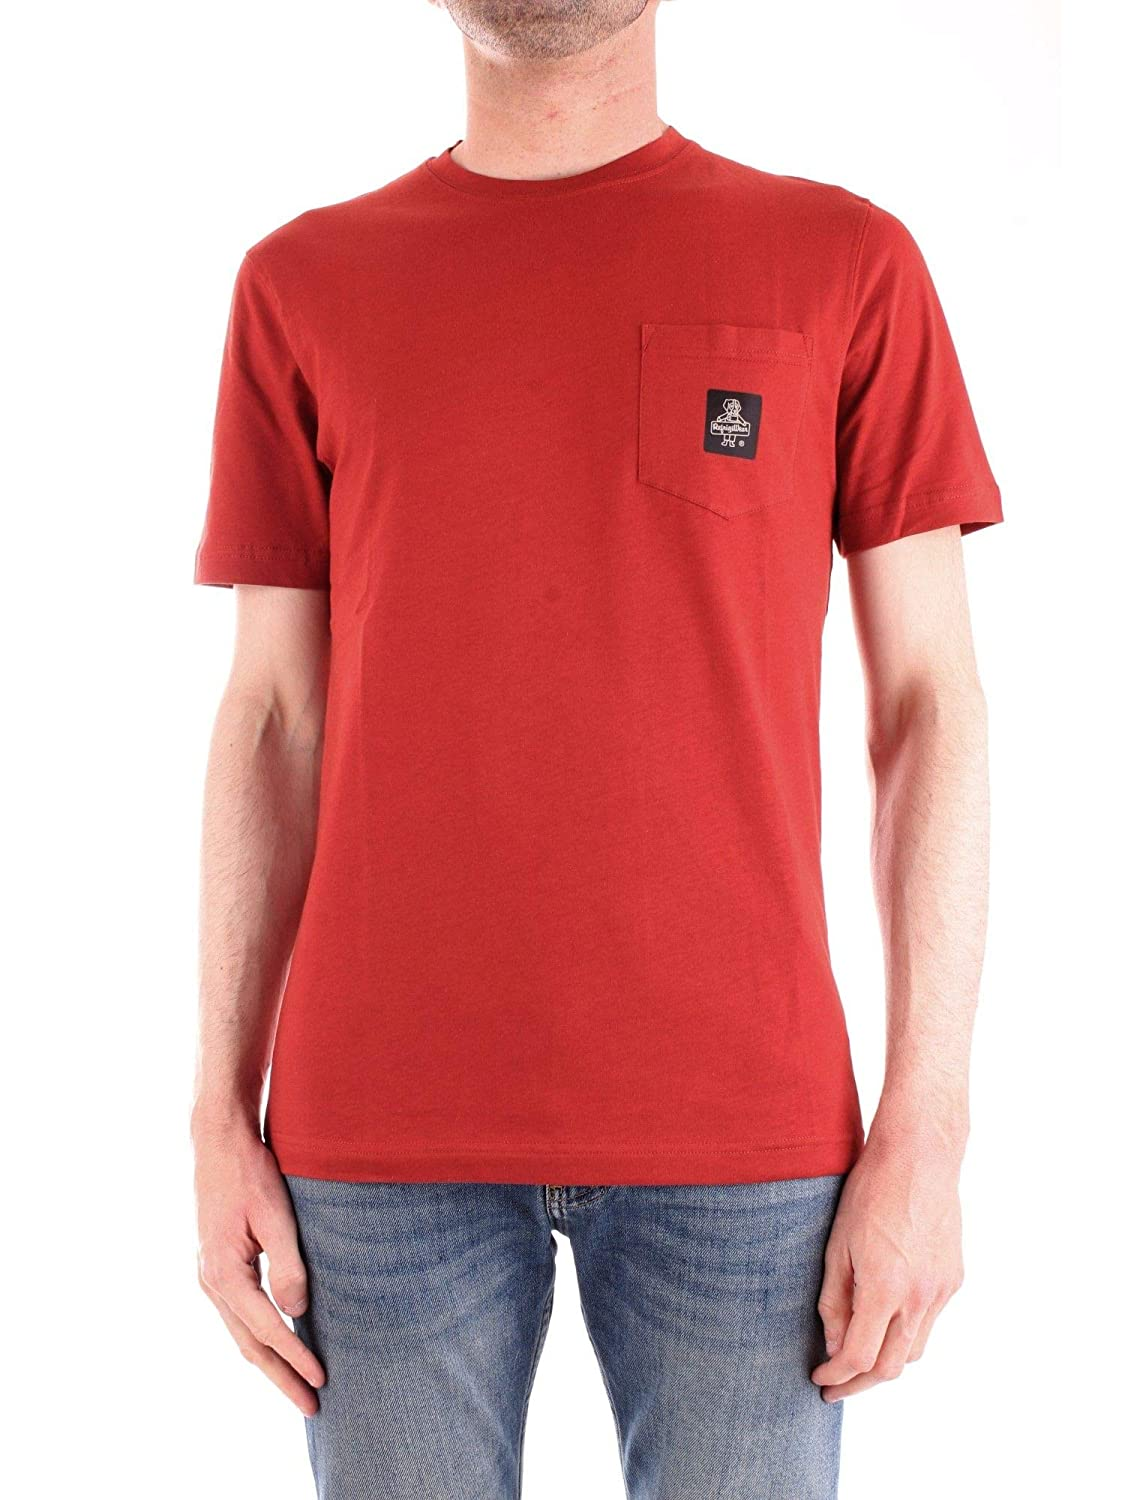 Brand Size S REFRIGIWEAR Men's T22600RED Red Cotton T-Shirt